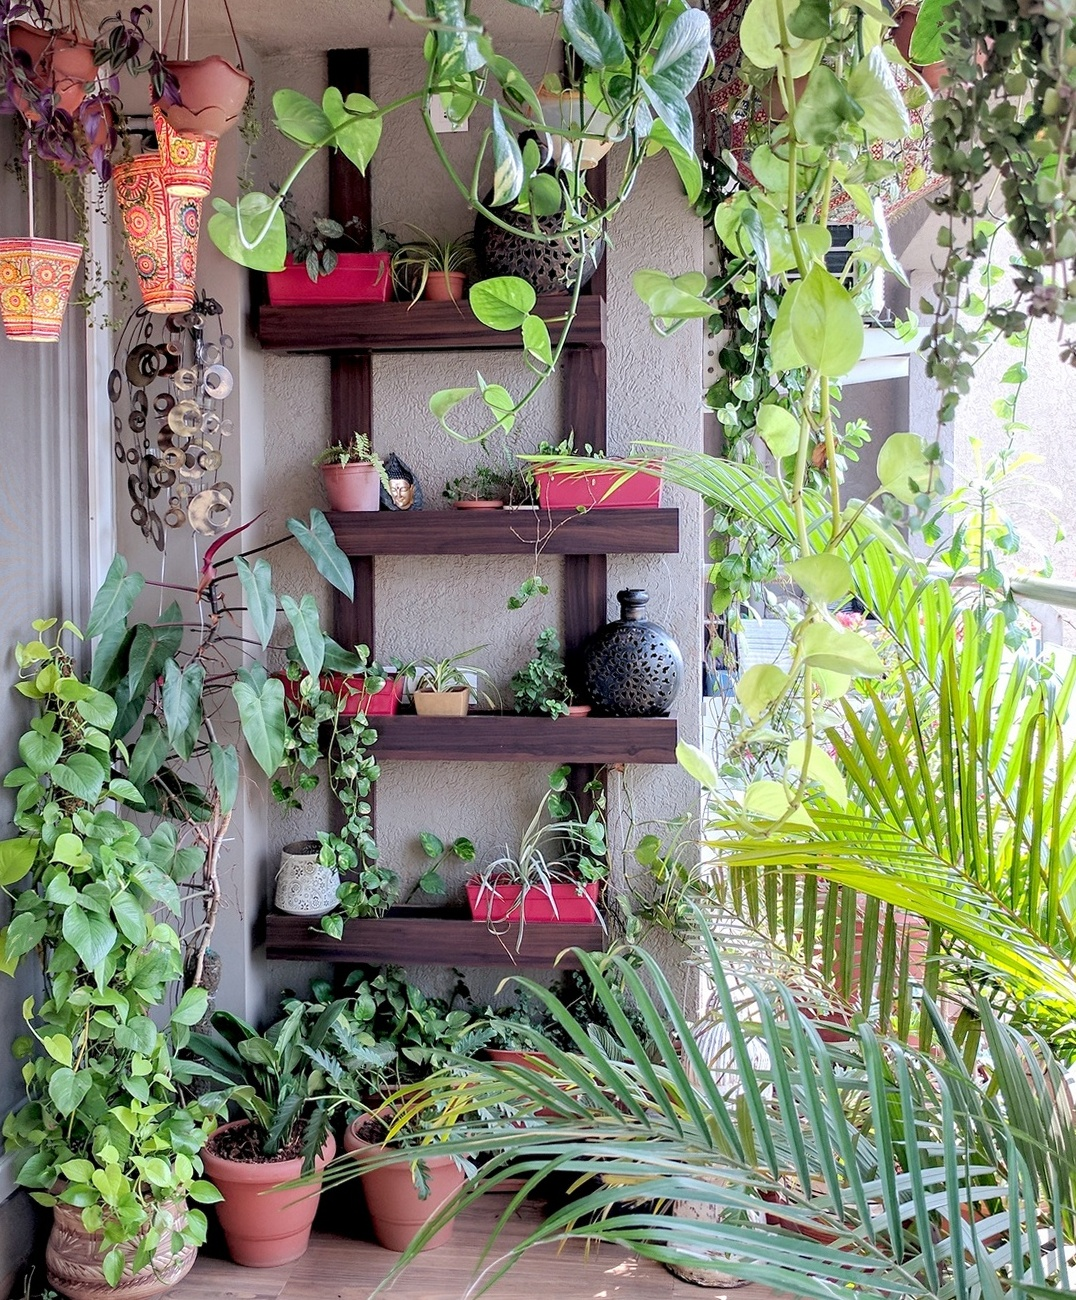 9 Awesome Ways To Up Your Balcony Wall Decor One Brick At A Time